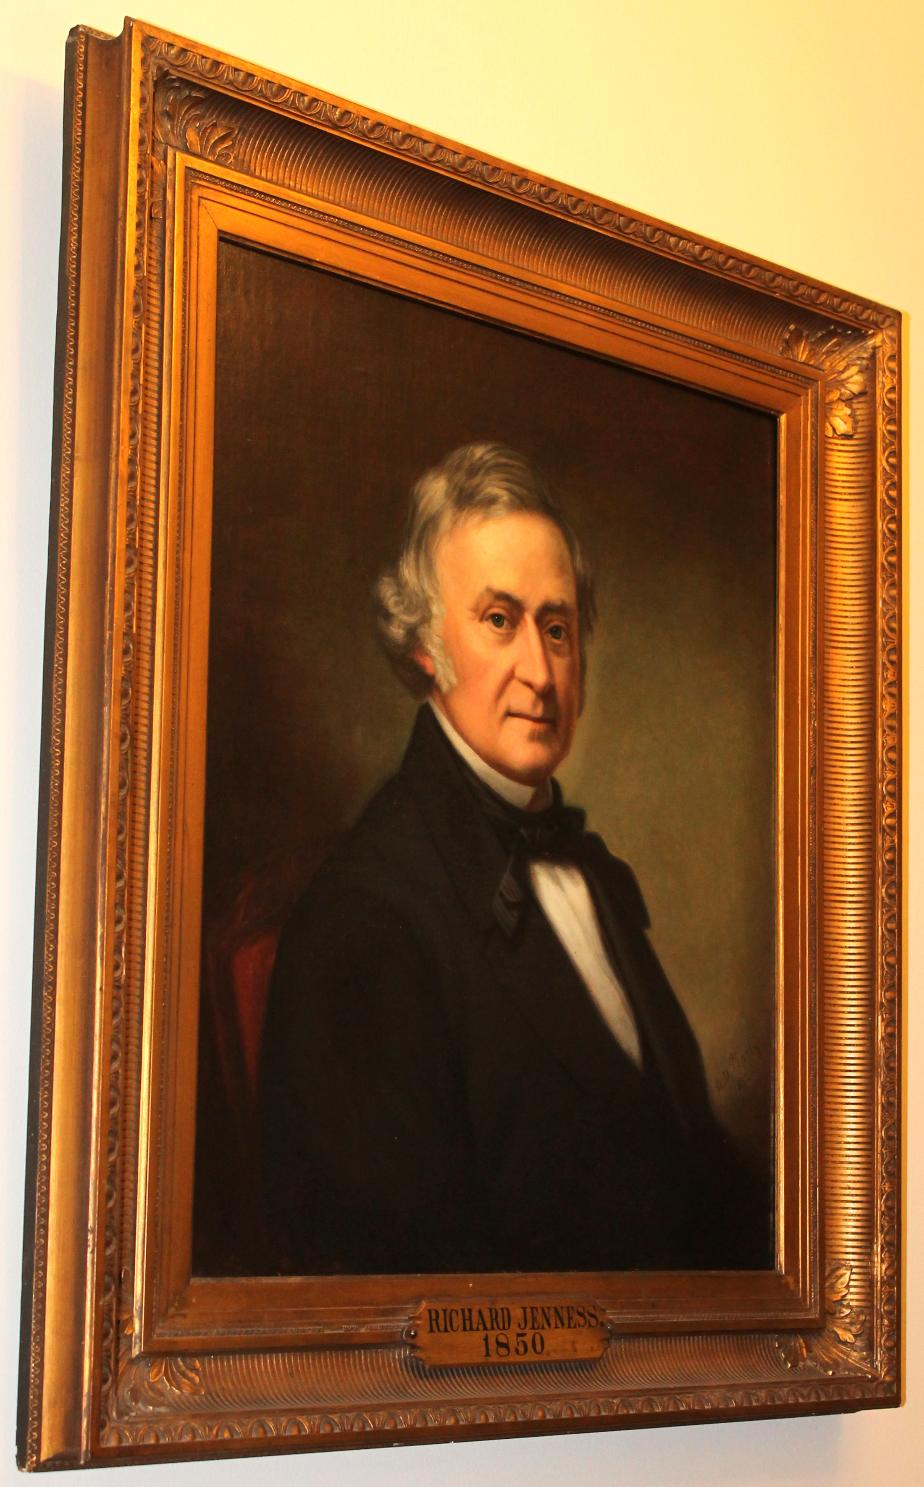 Richard Jenness NH State House Portrait